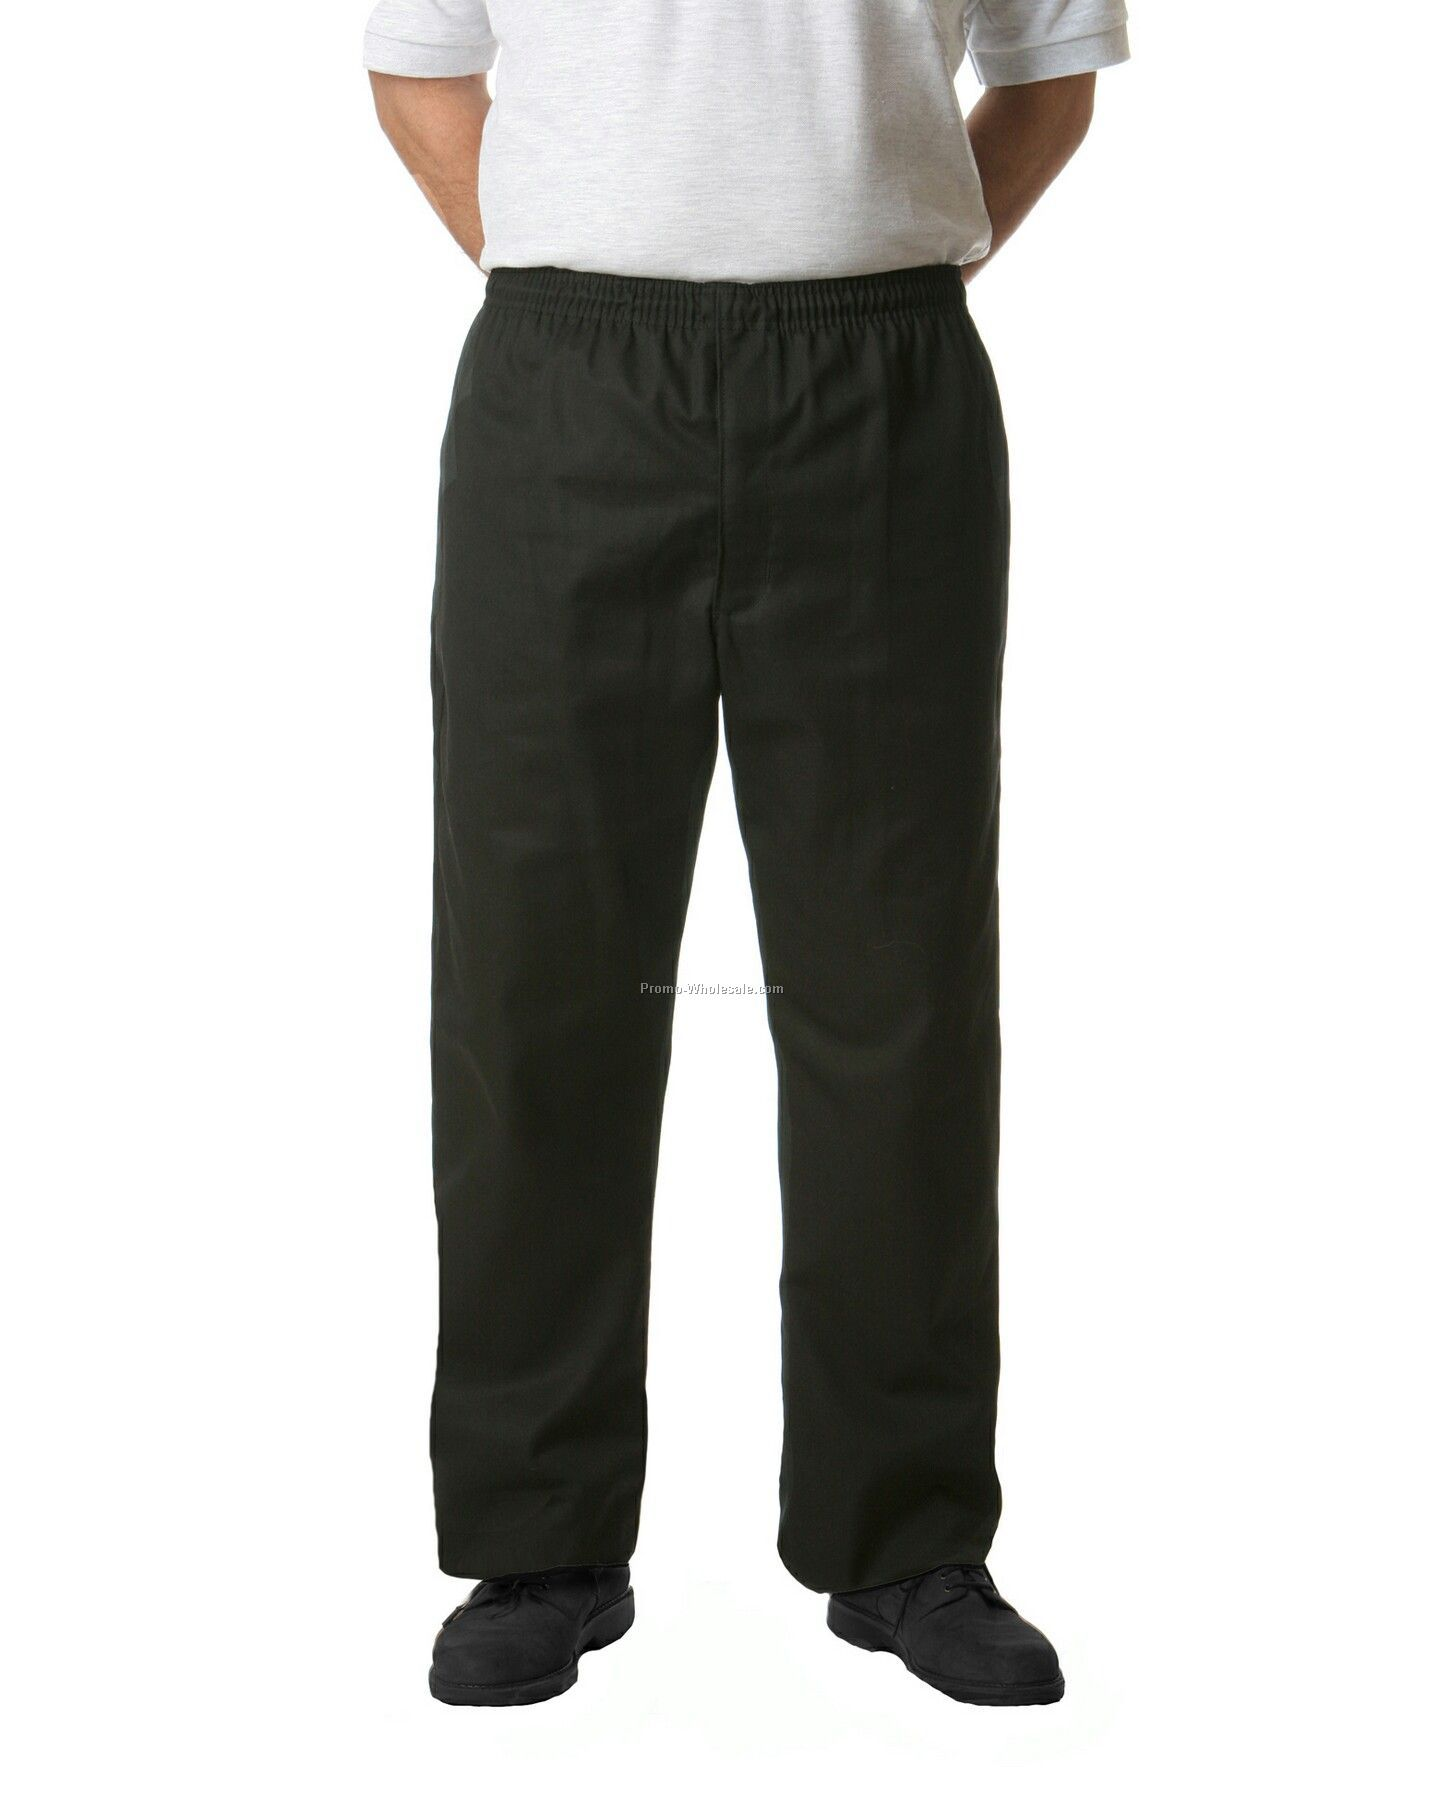 Chef Baggies Pants (2x-large/ Black)